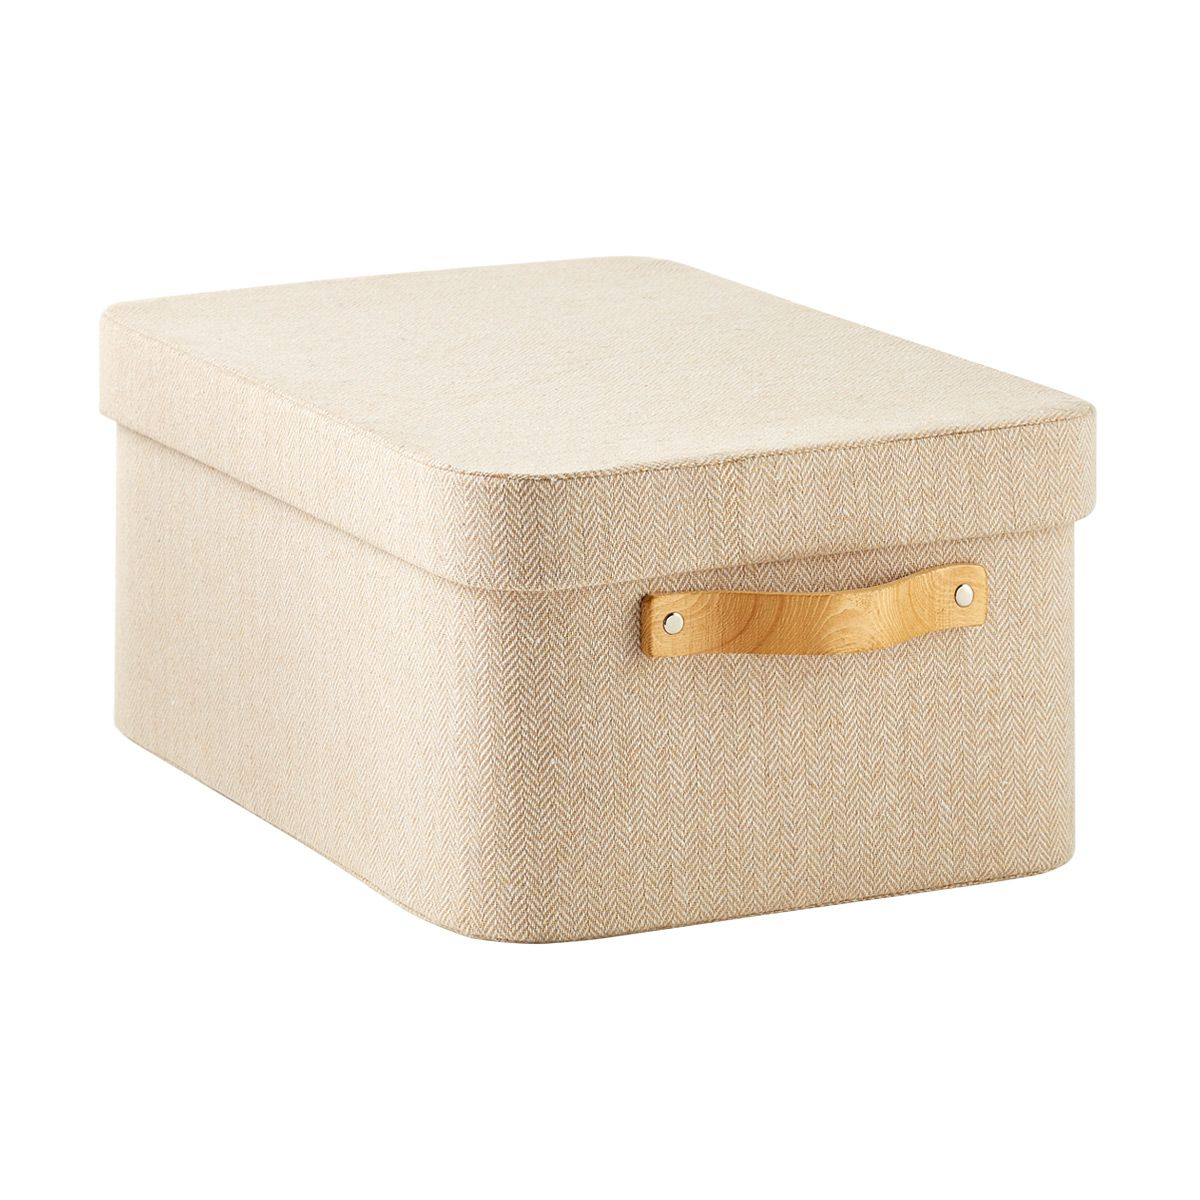 Natural Herringbone Storage Boxes With Wooden Handles In 2021 Storage Boxes Storage Bins With Lids Modern Storage Boxes Large decorative storage boxes with lids